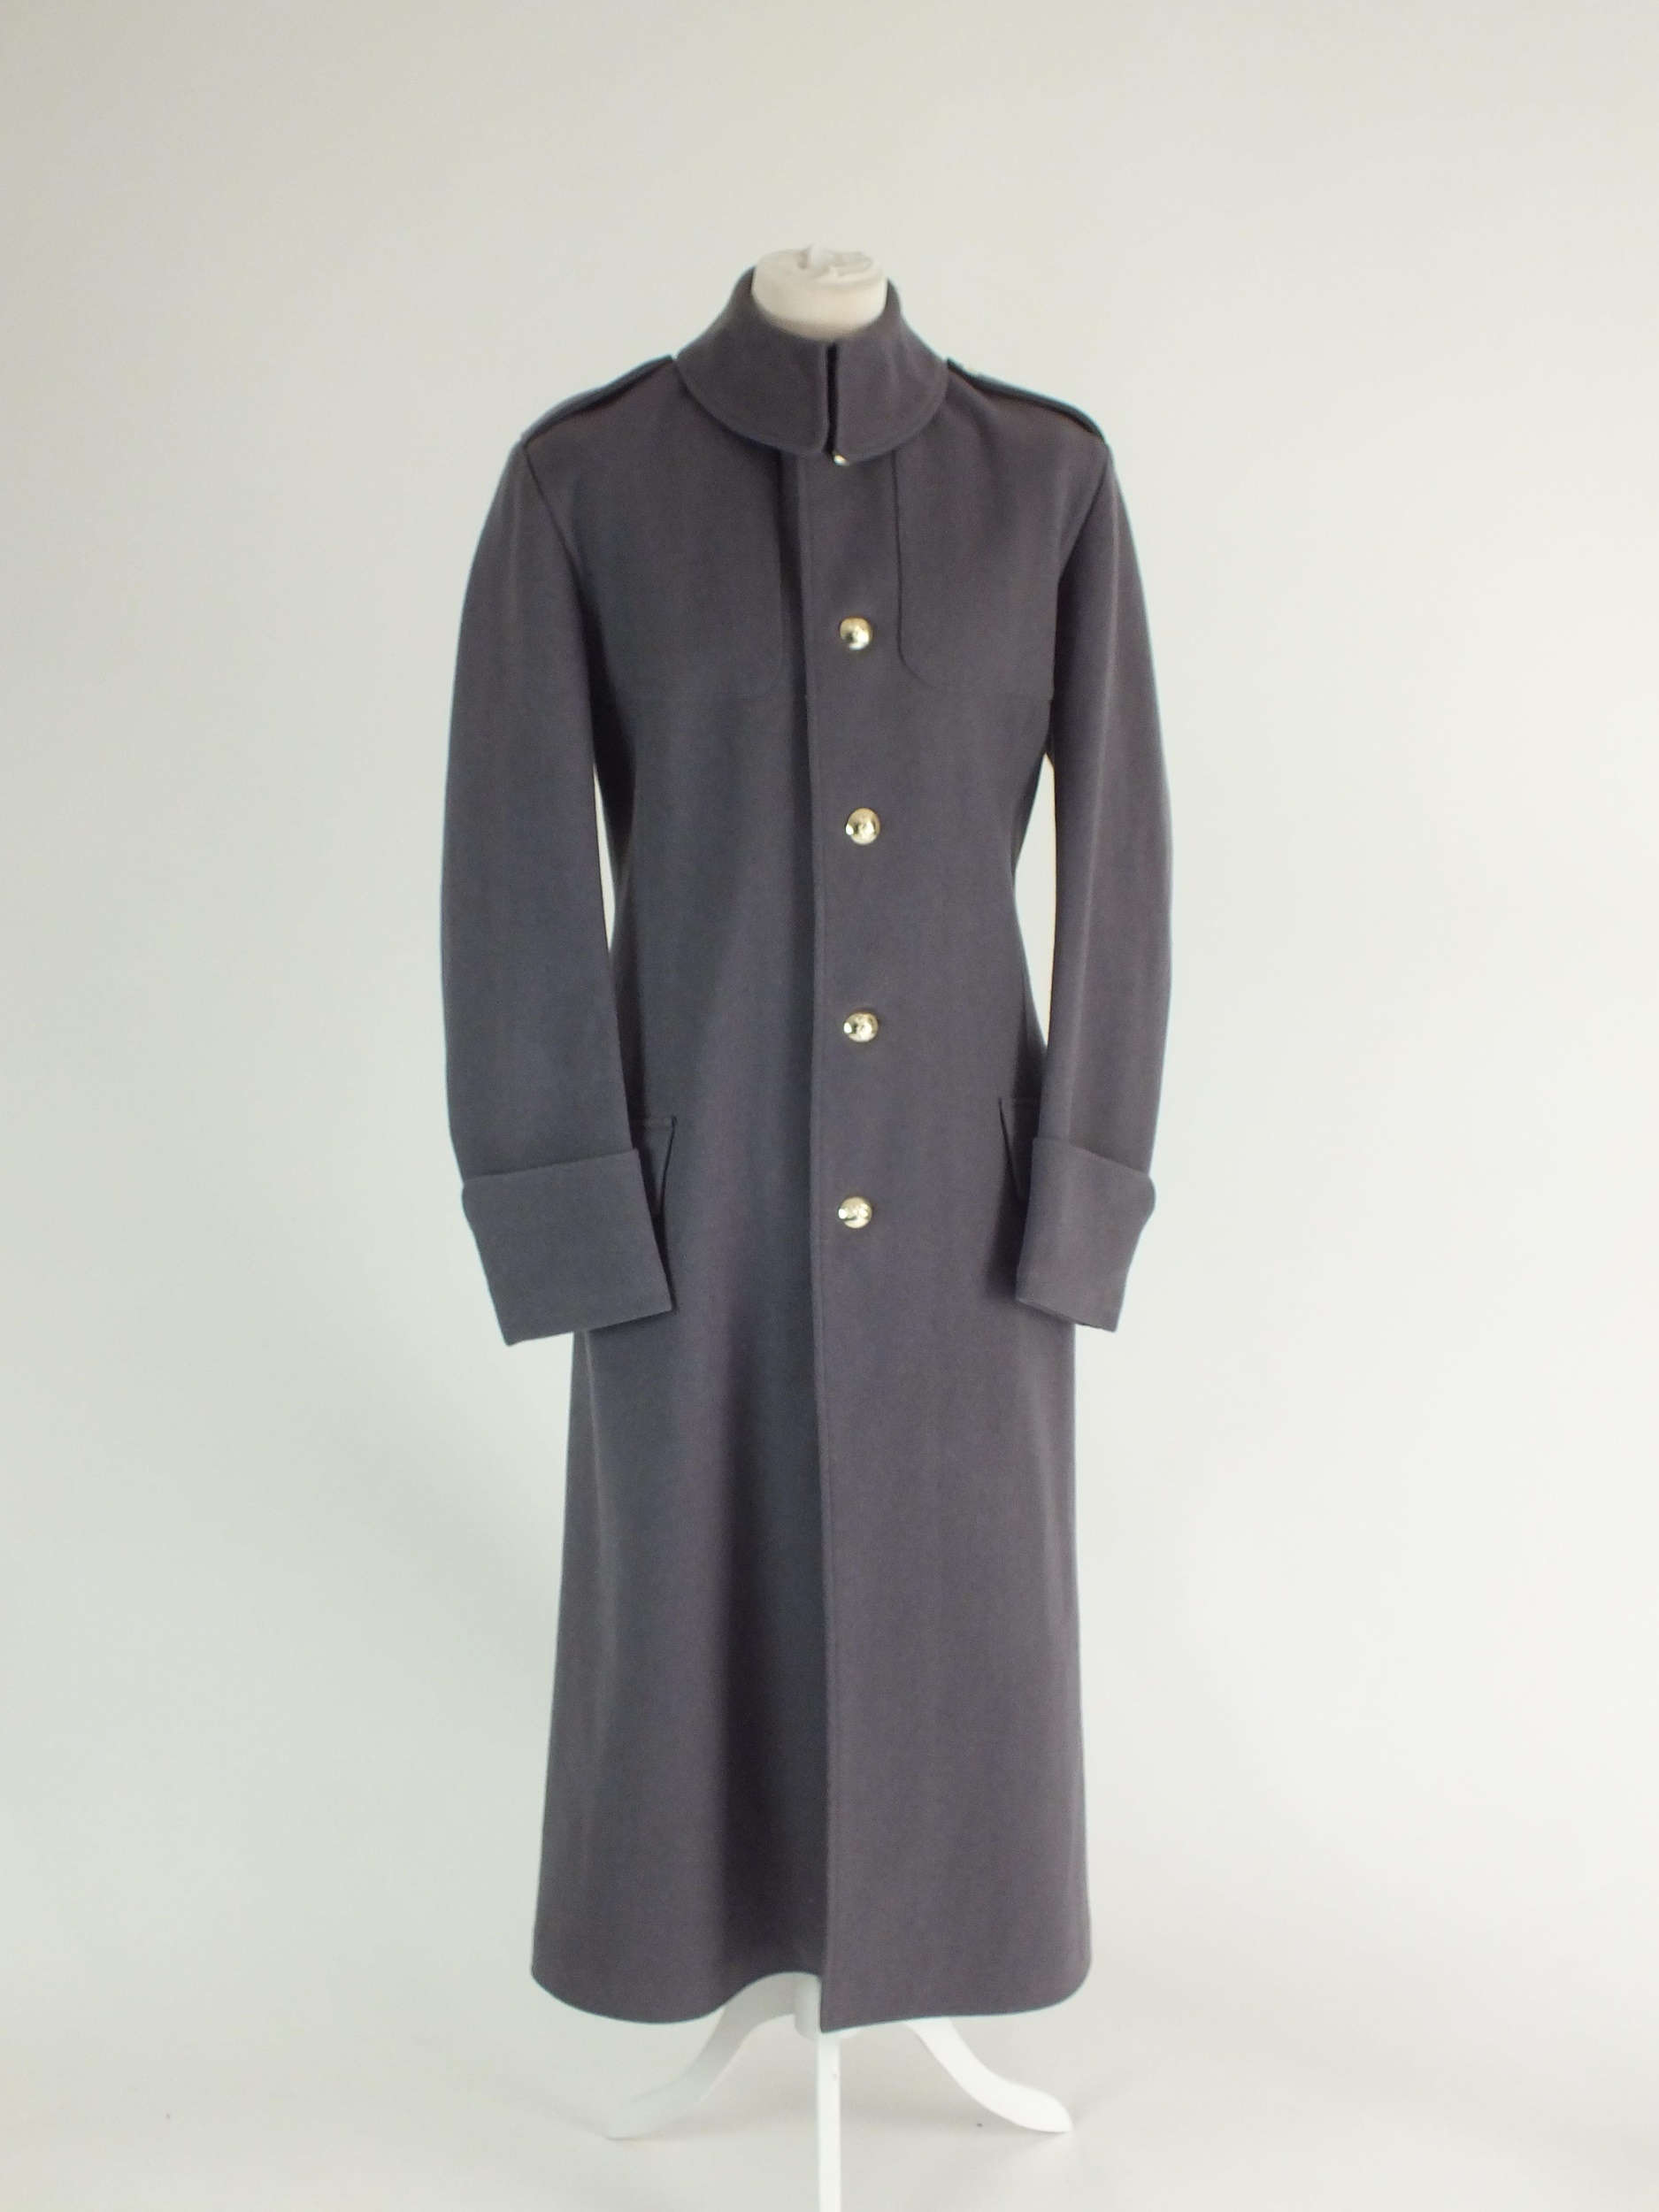 British Army and RAF greatcoats - Image 5 of 5